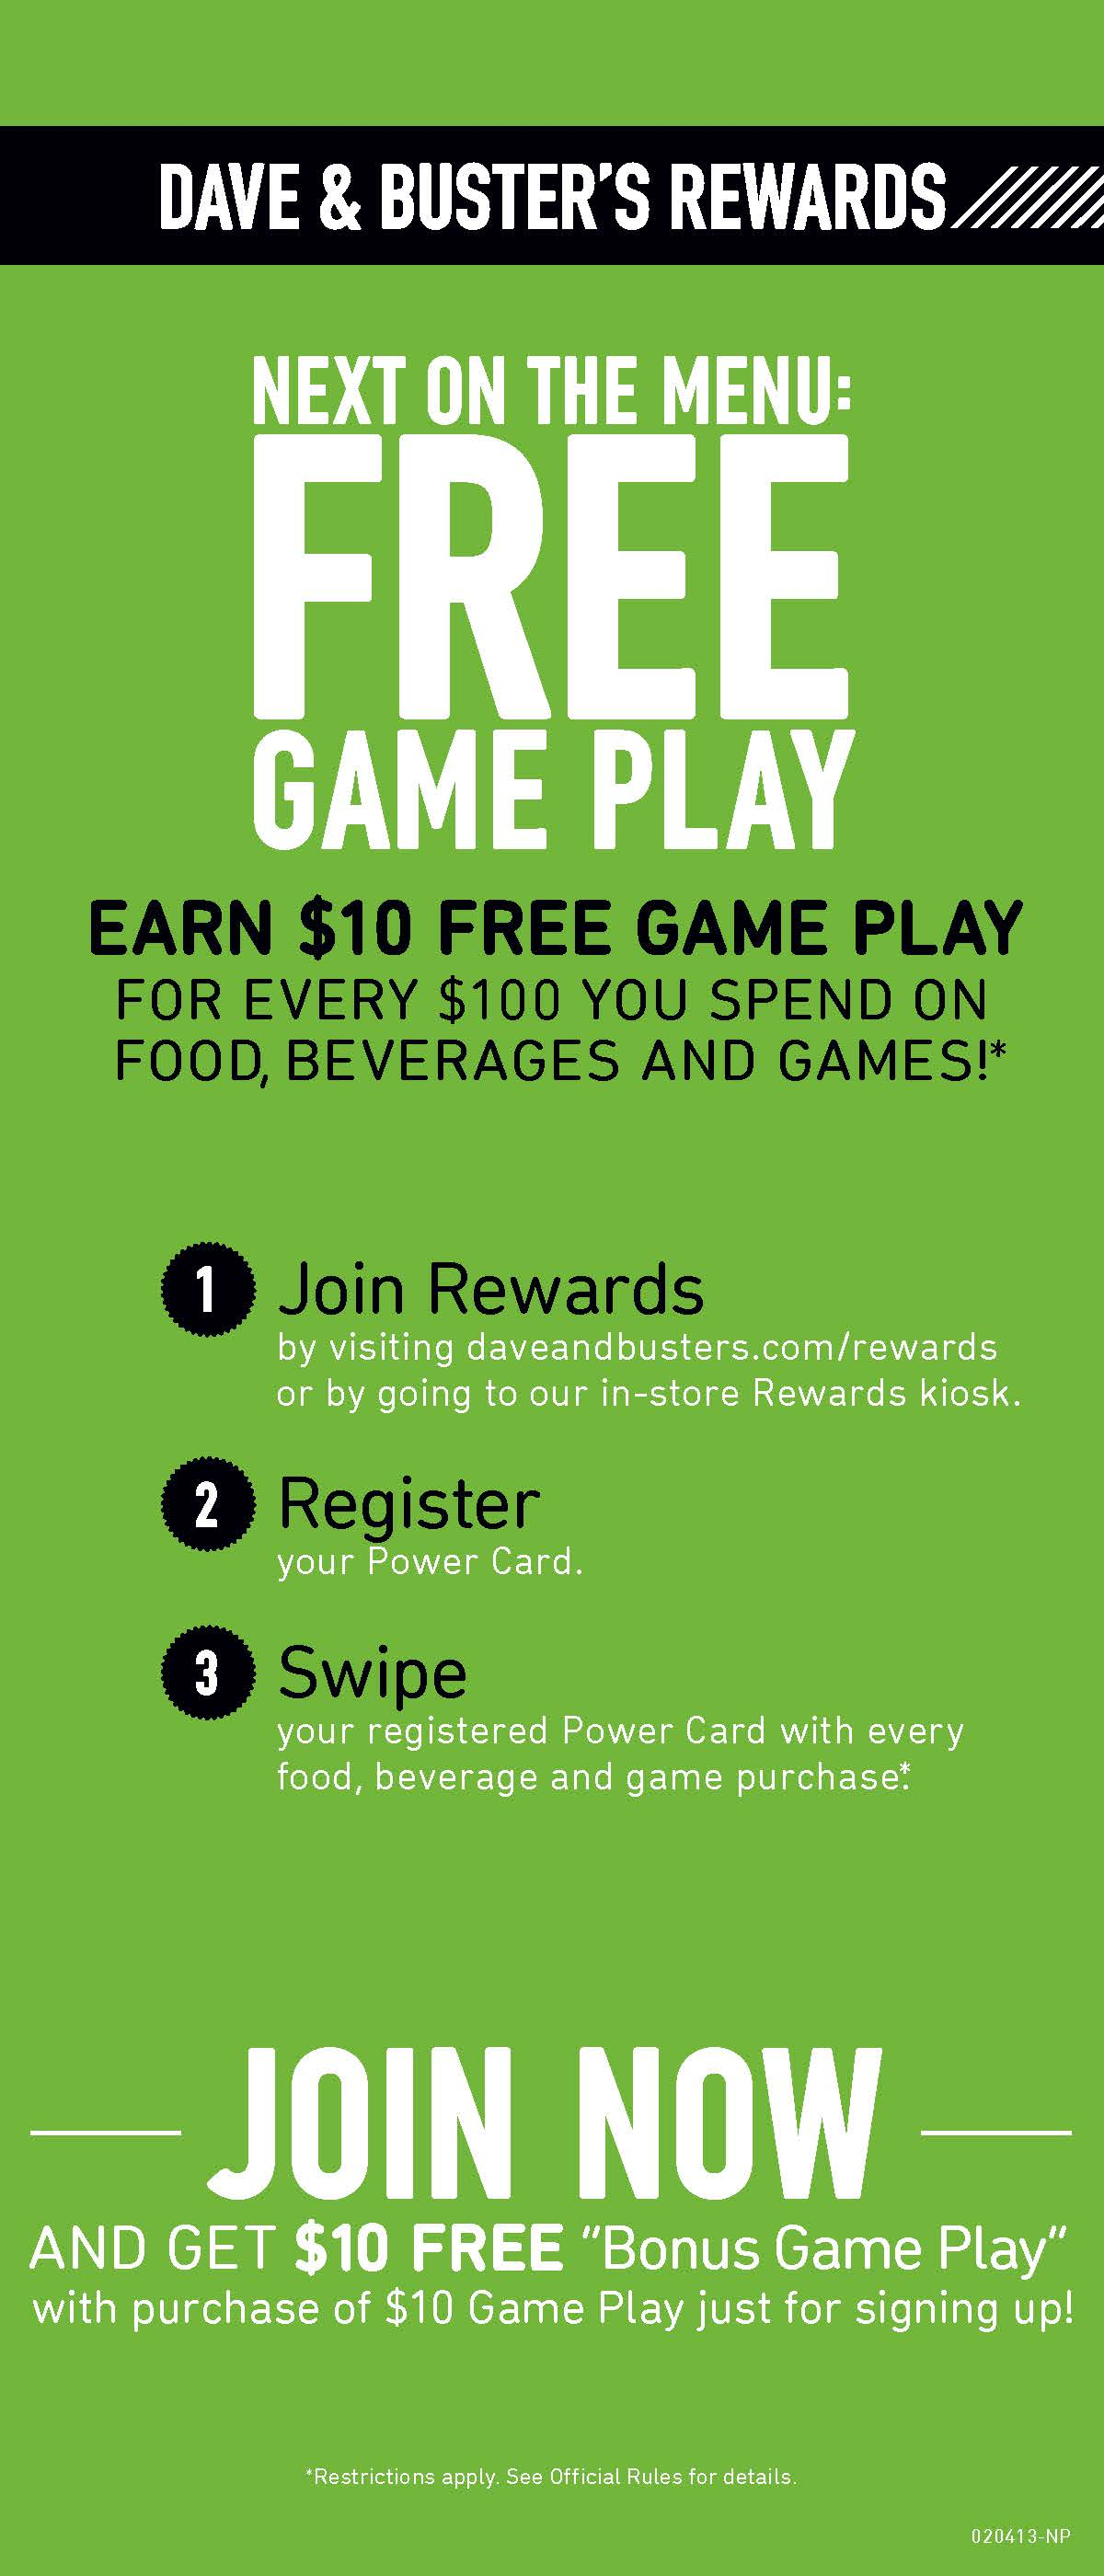 image about Dave and Busters Coupons Printable named Dave busters coupon - Vitamine shoppee